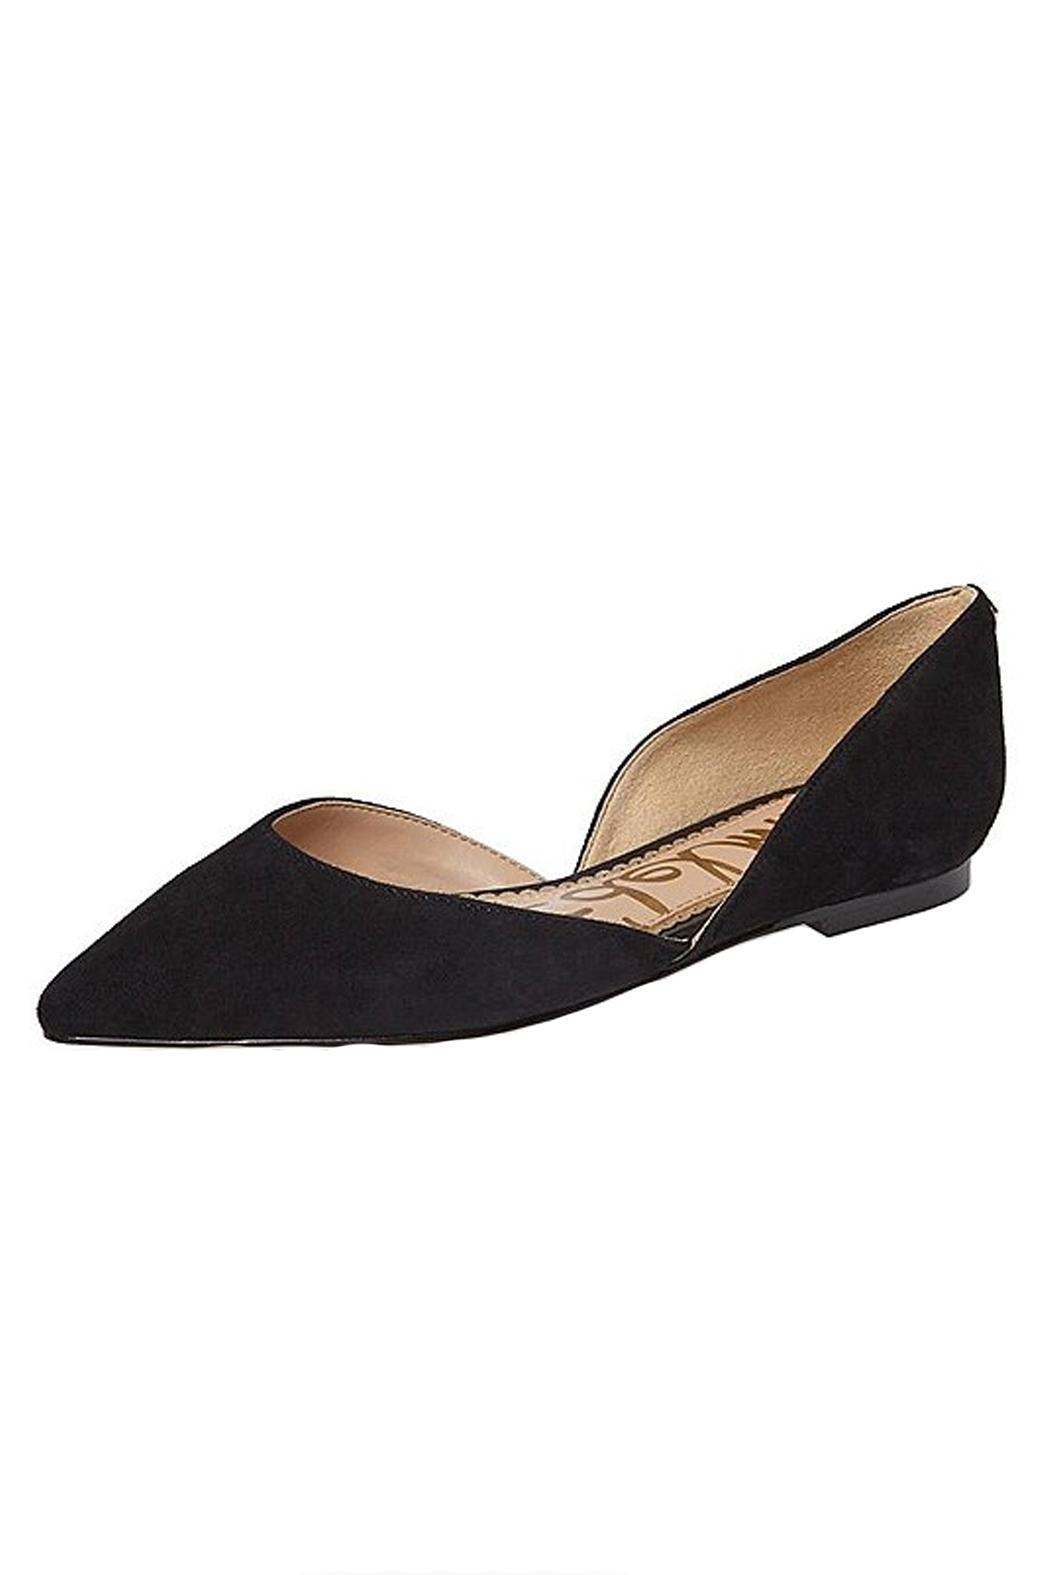 Sam Edelman Black D'orsay Flat Shoes - Front Cropped Image